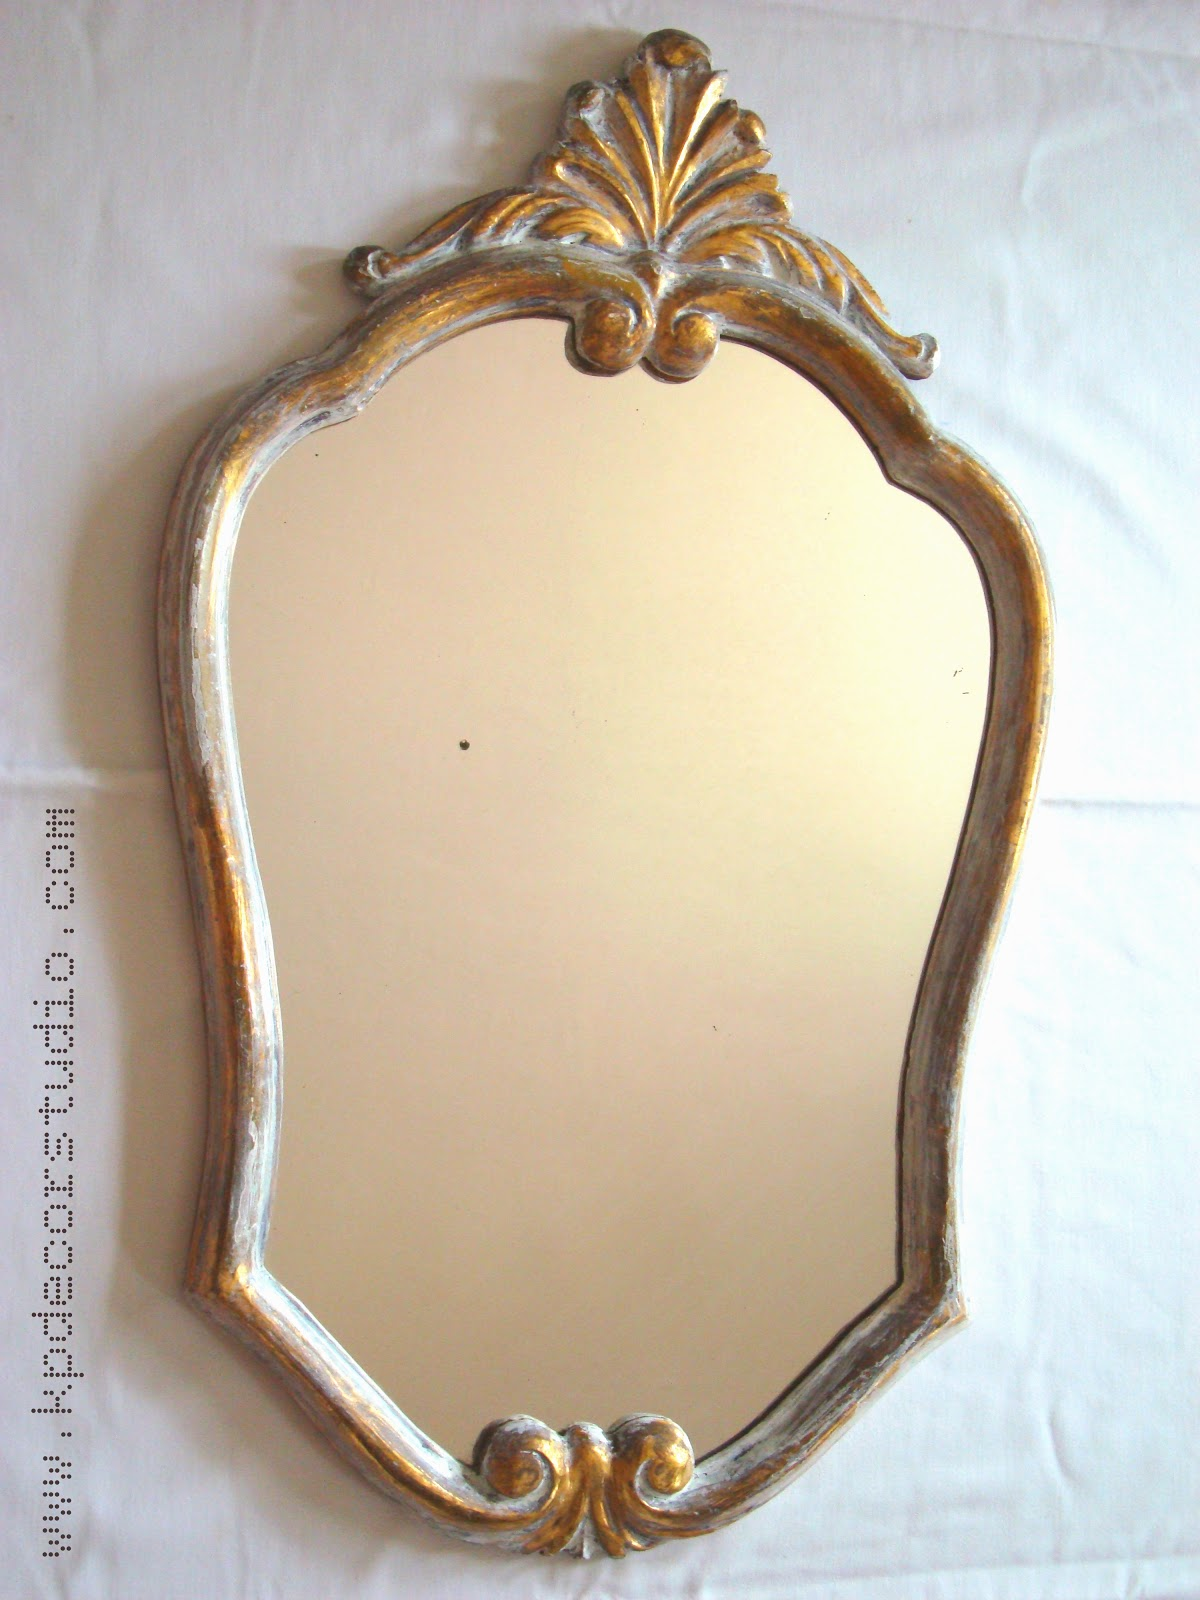 Kp decor studio espejo luis xv luis xv gold mirror for Espejo pared vintage